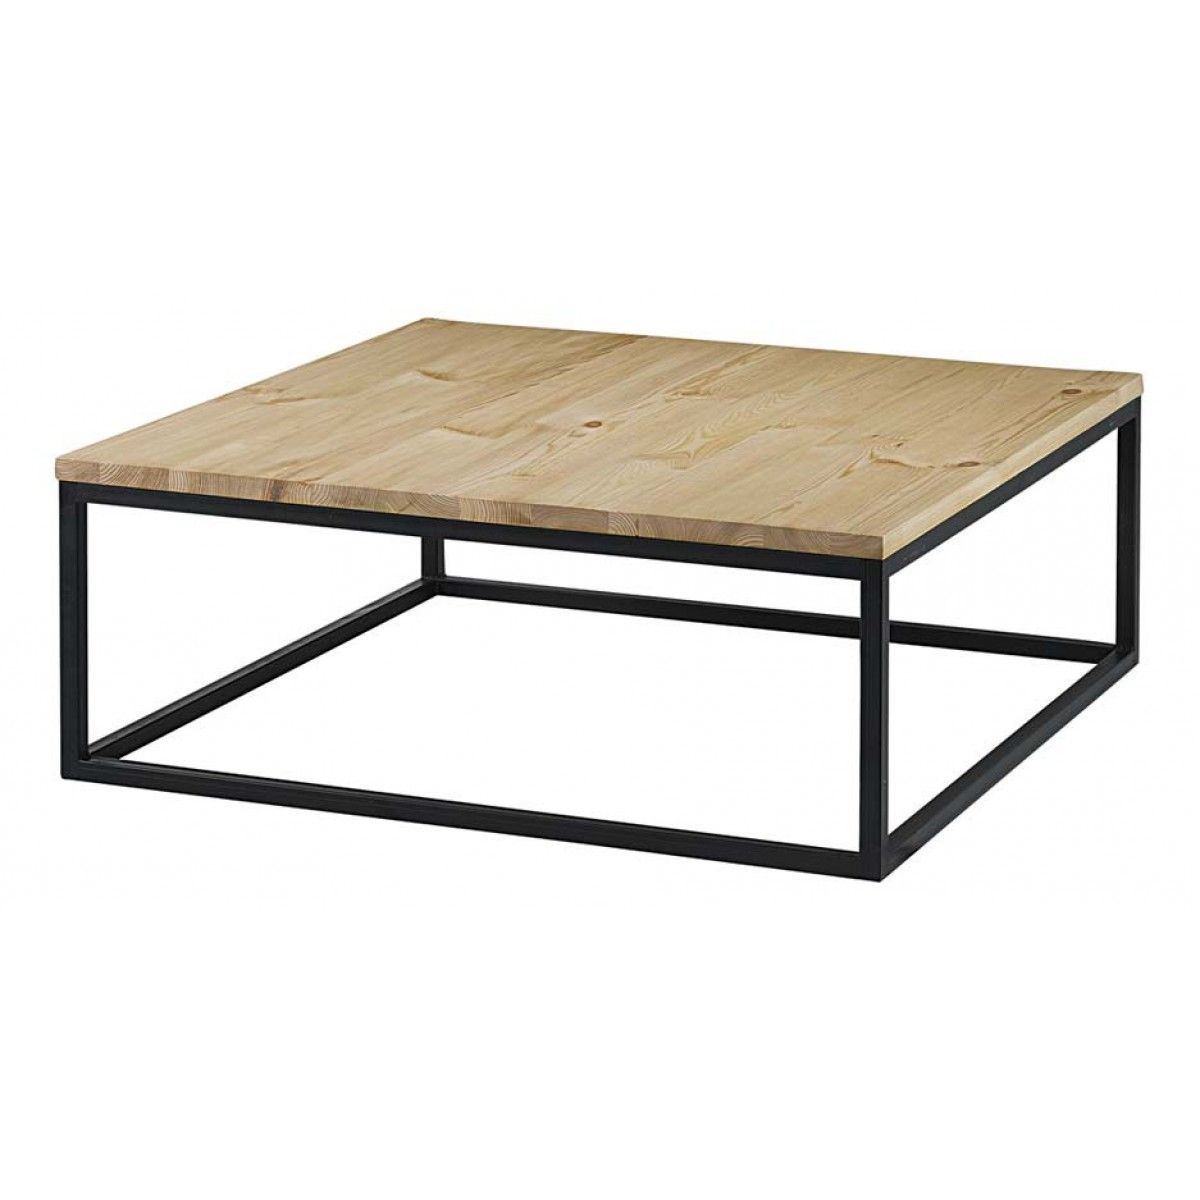 Table basse carrée pin massif brut et métal 100 cm City